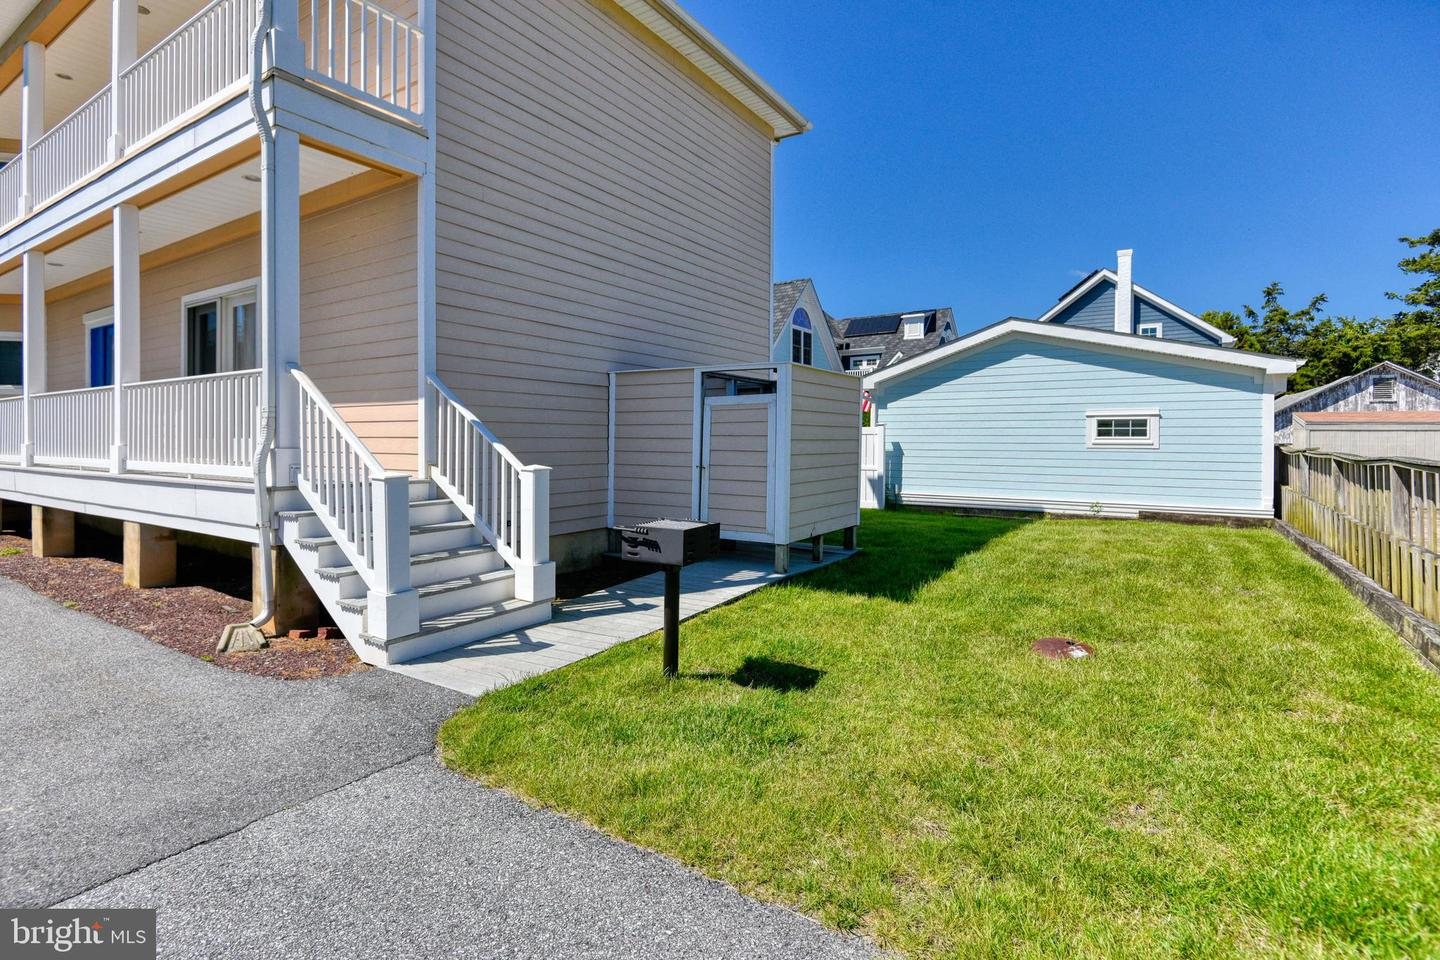 DESU140752-301729566312-2019-05-20-15-11-27 7 Olive Ave | Rehoboth Beach, DE Real Estate For Sale | MLS# Desu140752  - Coldwell Banker Resort Realty